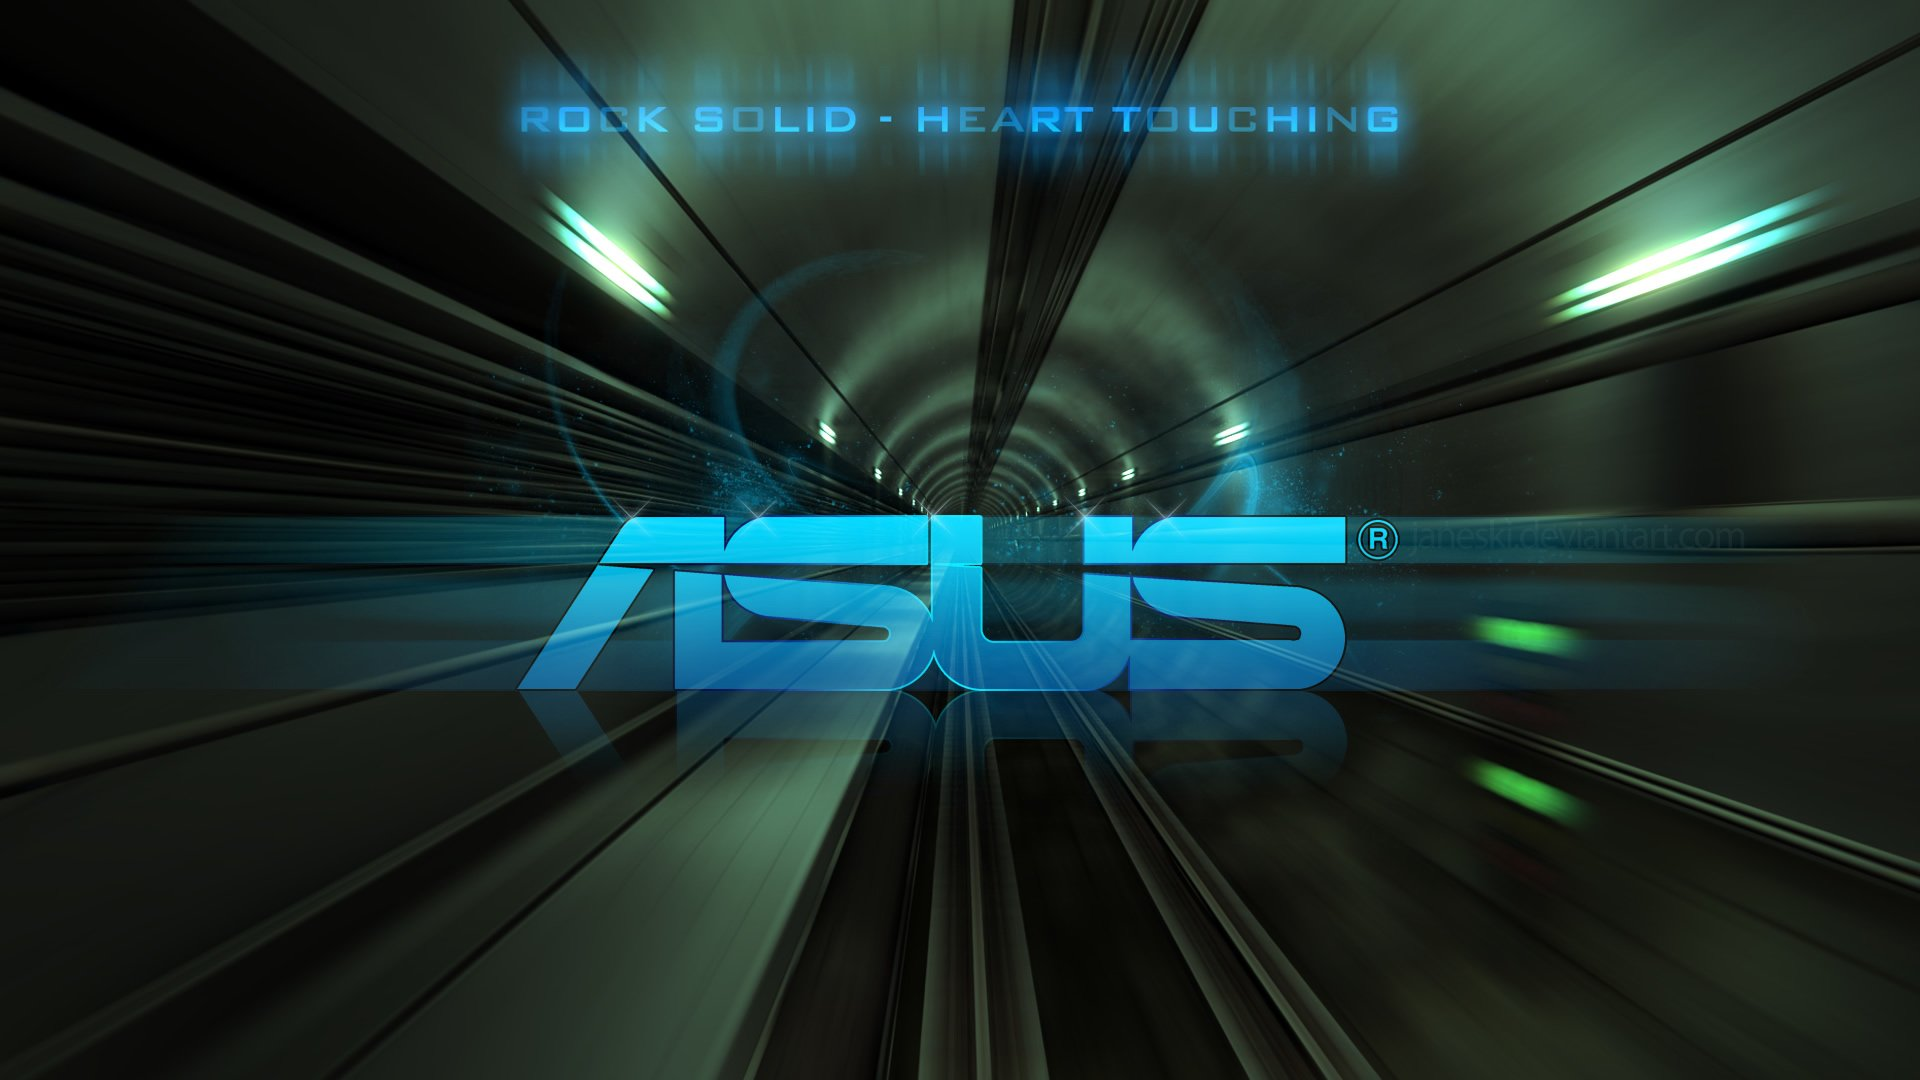 162 asus hd wallpapers | background images - wallpaper abyss